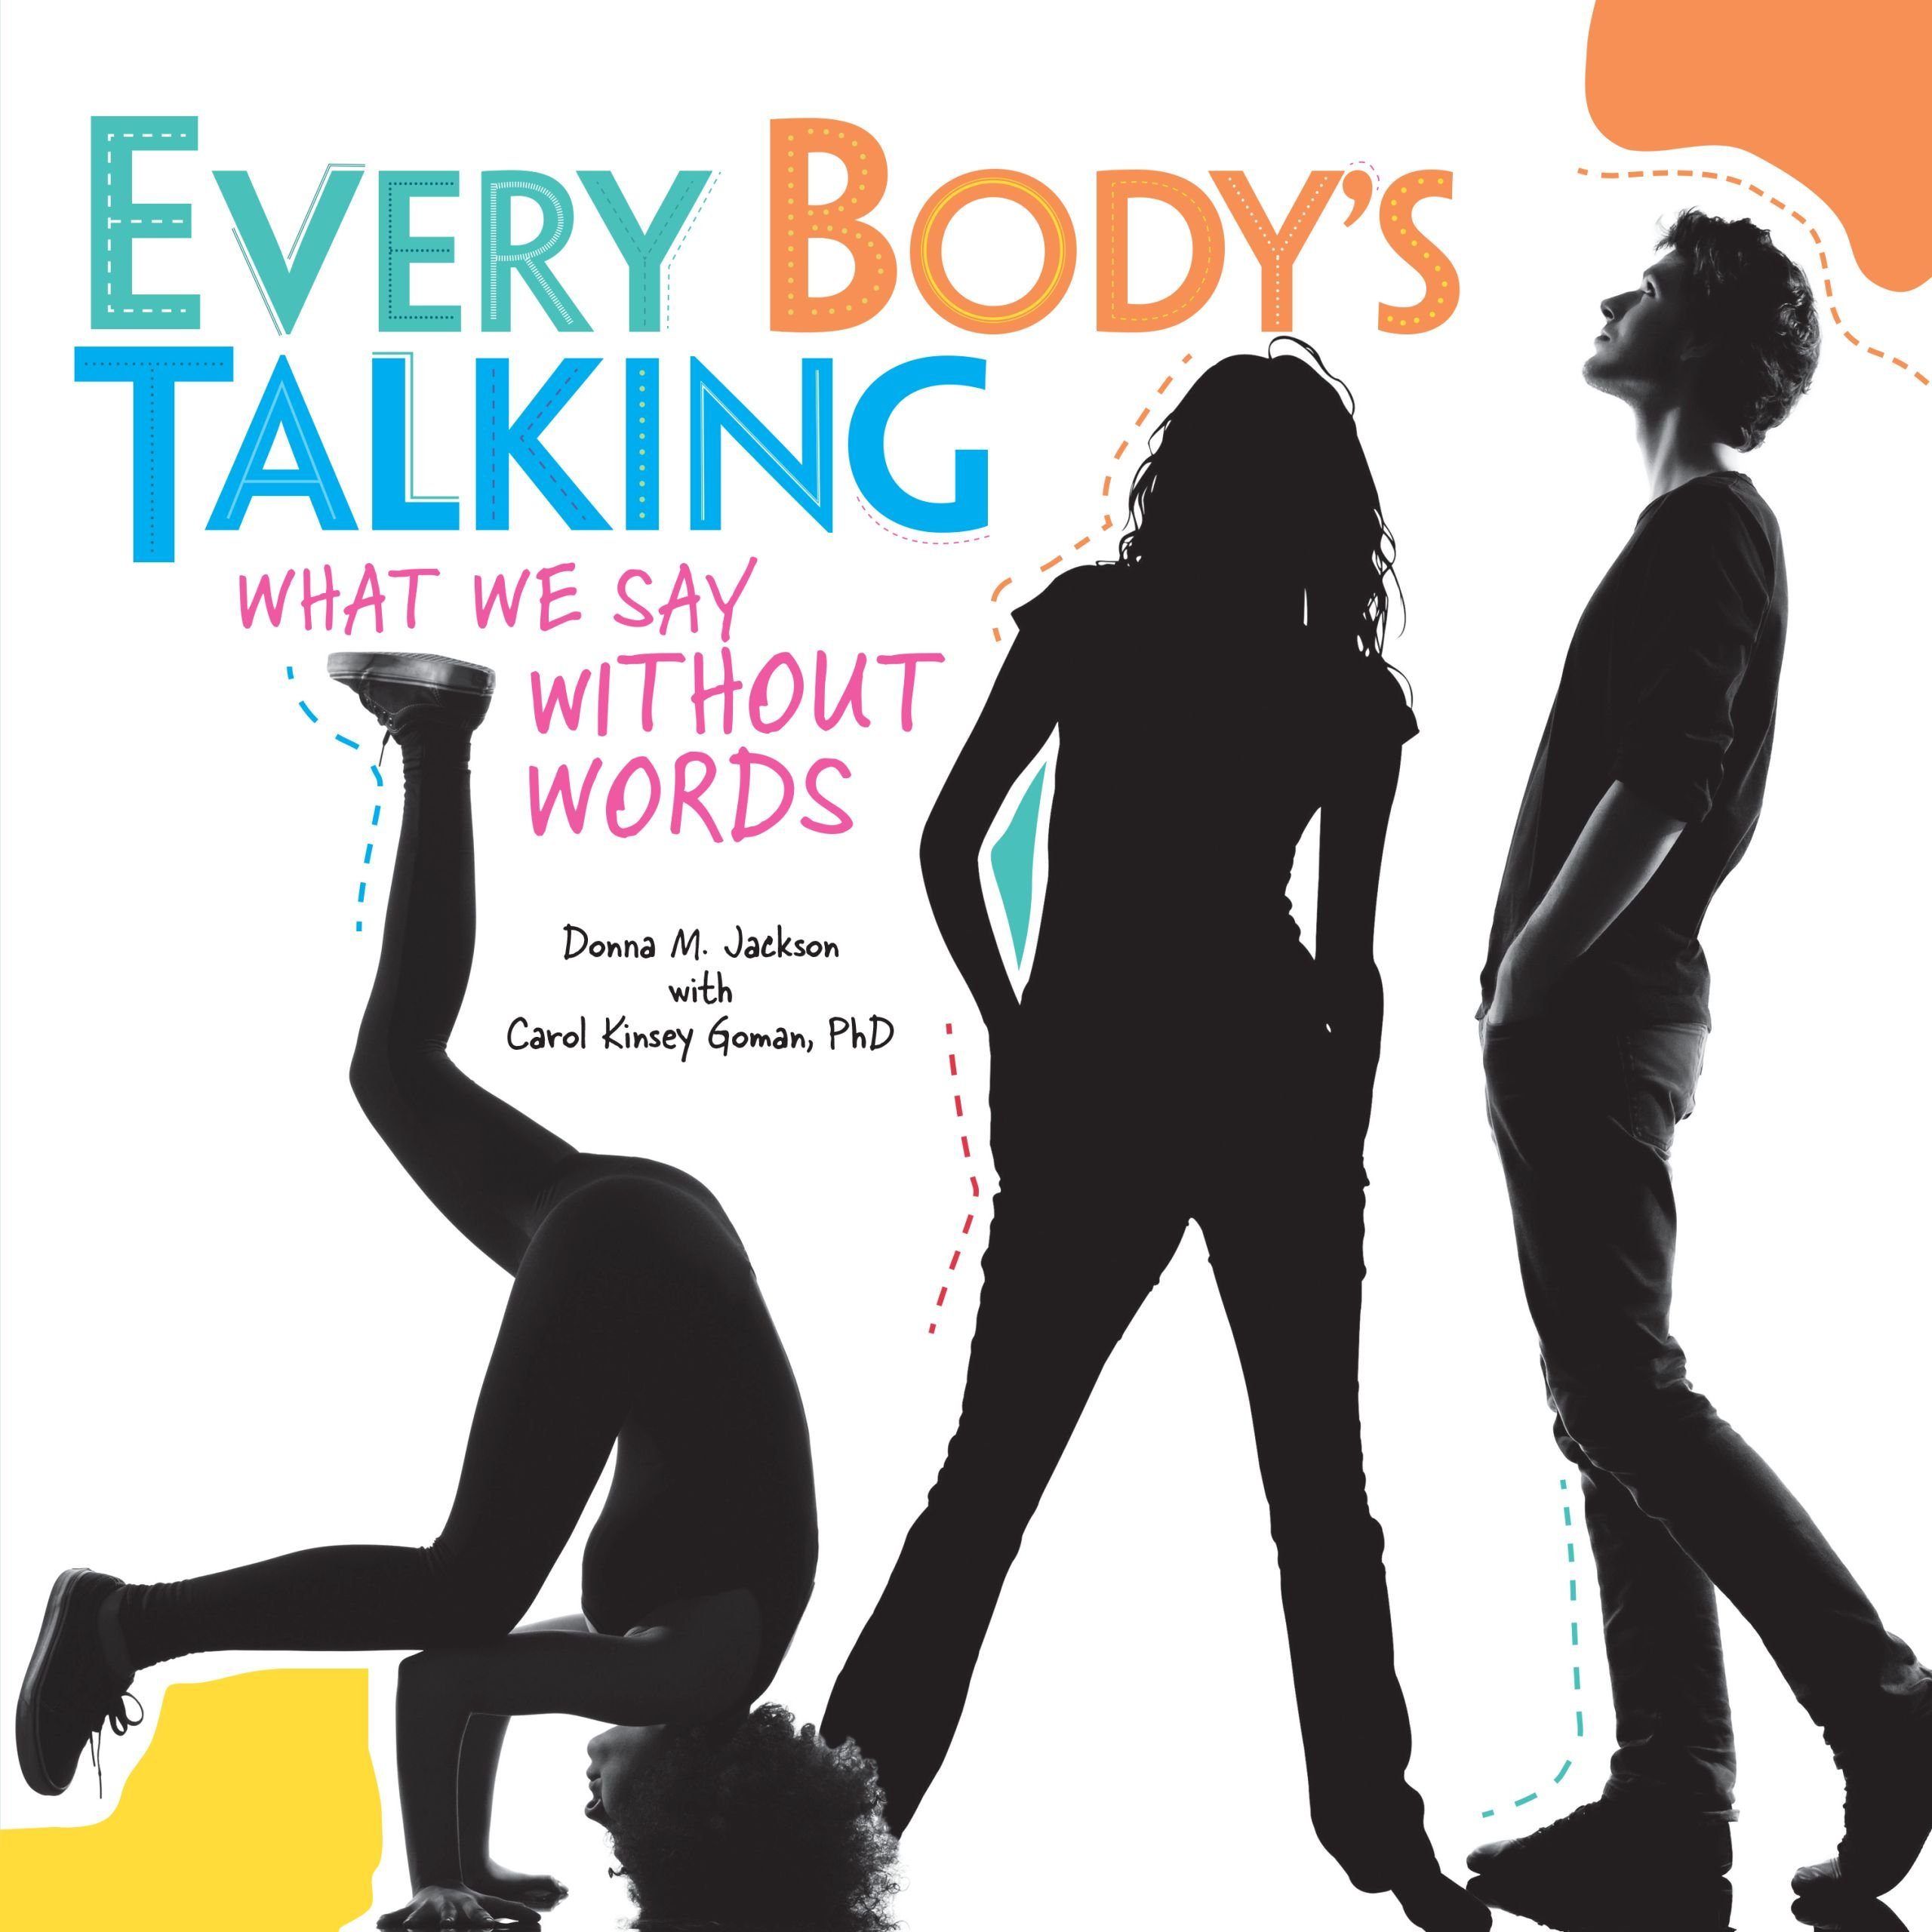 Every Body's Talking: What We Say Without Words (Anglais) Belle reliure – 1 janvier 2014 Donna M. Jackson Graphic Universe 1467708585 Children: Grades 4-6